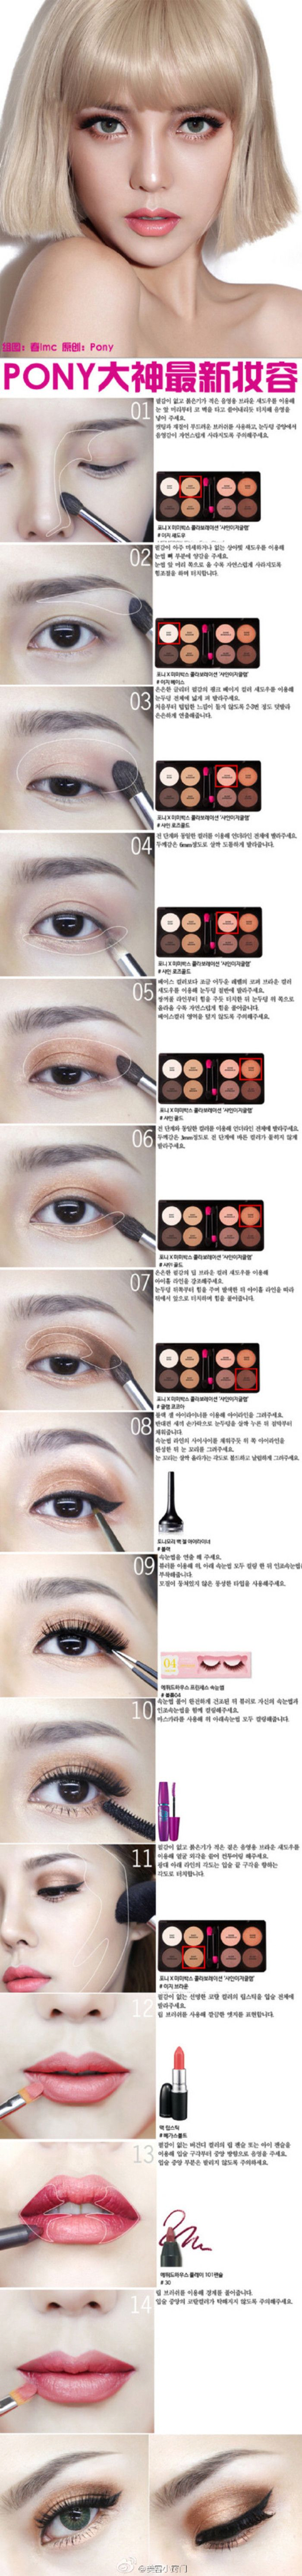 makeup step by step tutorial by Pony #koreanmakeup